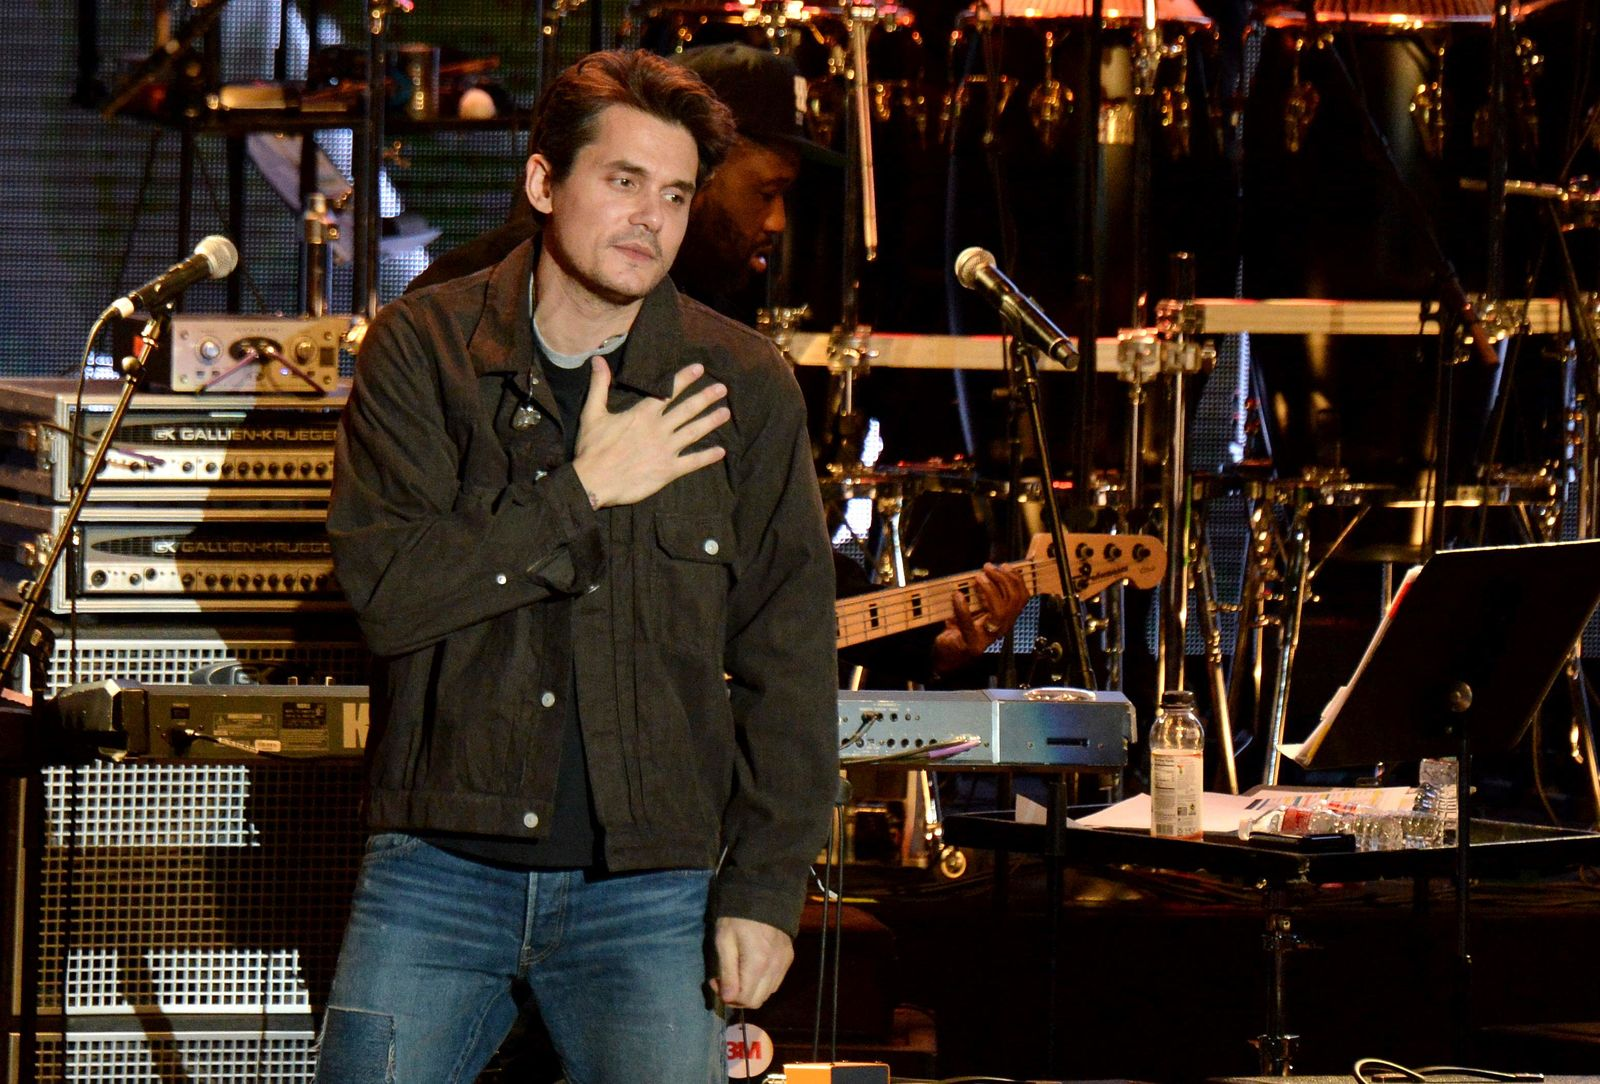 John Mayer gestures to the crowd during the tribute event Mac Miller: A Celebration of Life on Wednesday, Oct. 31, 2018, at the Greek Theatre in Los Angeles. (Photo by Amy Harris/Invision/AP)